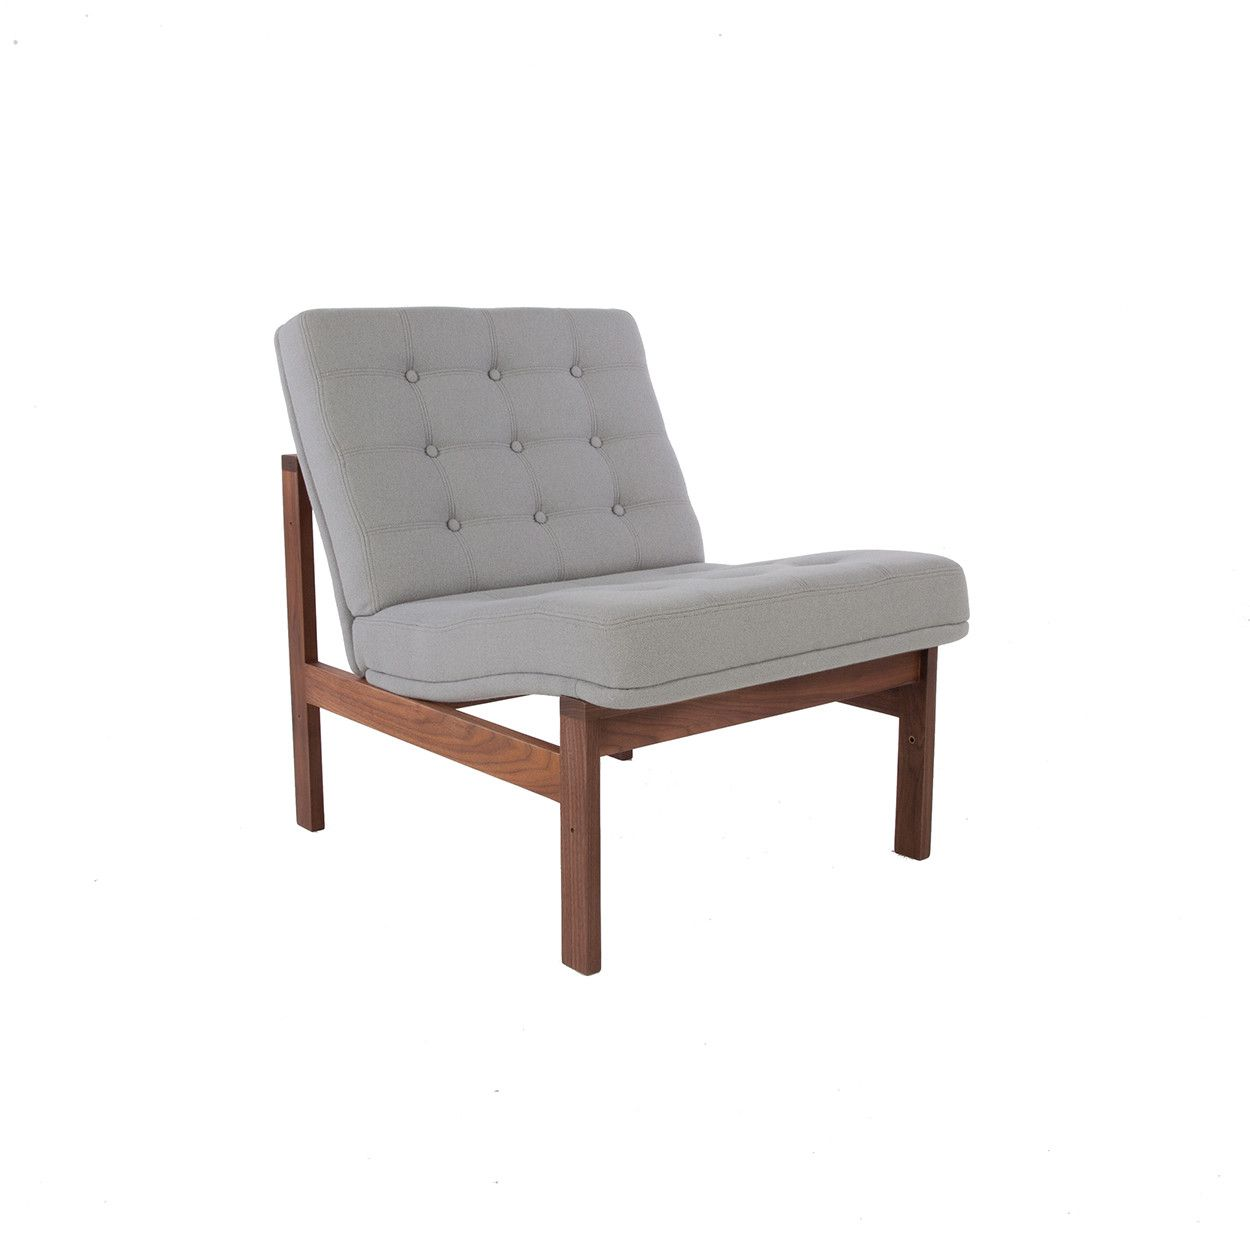 Mid-Century Modern Reproduction Moduline Sofa - Grey Inspired by Ole Gjerlov-Knudsen and Torben Lind